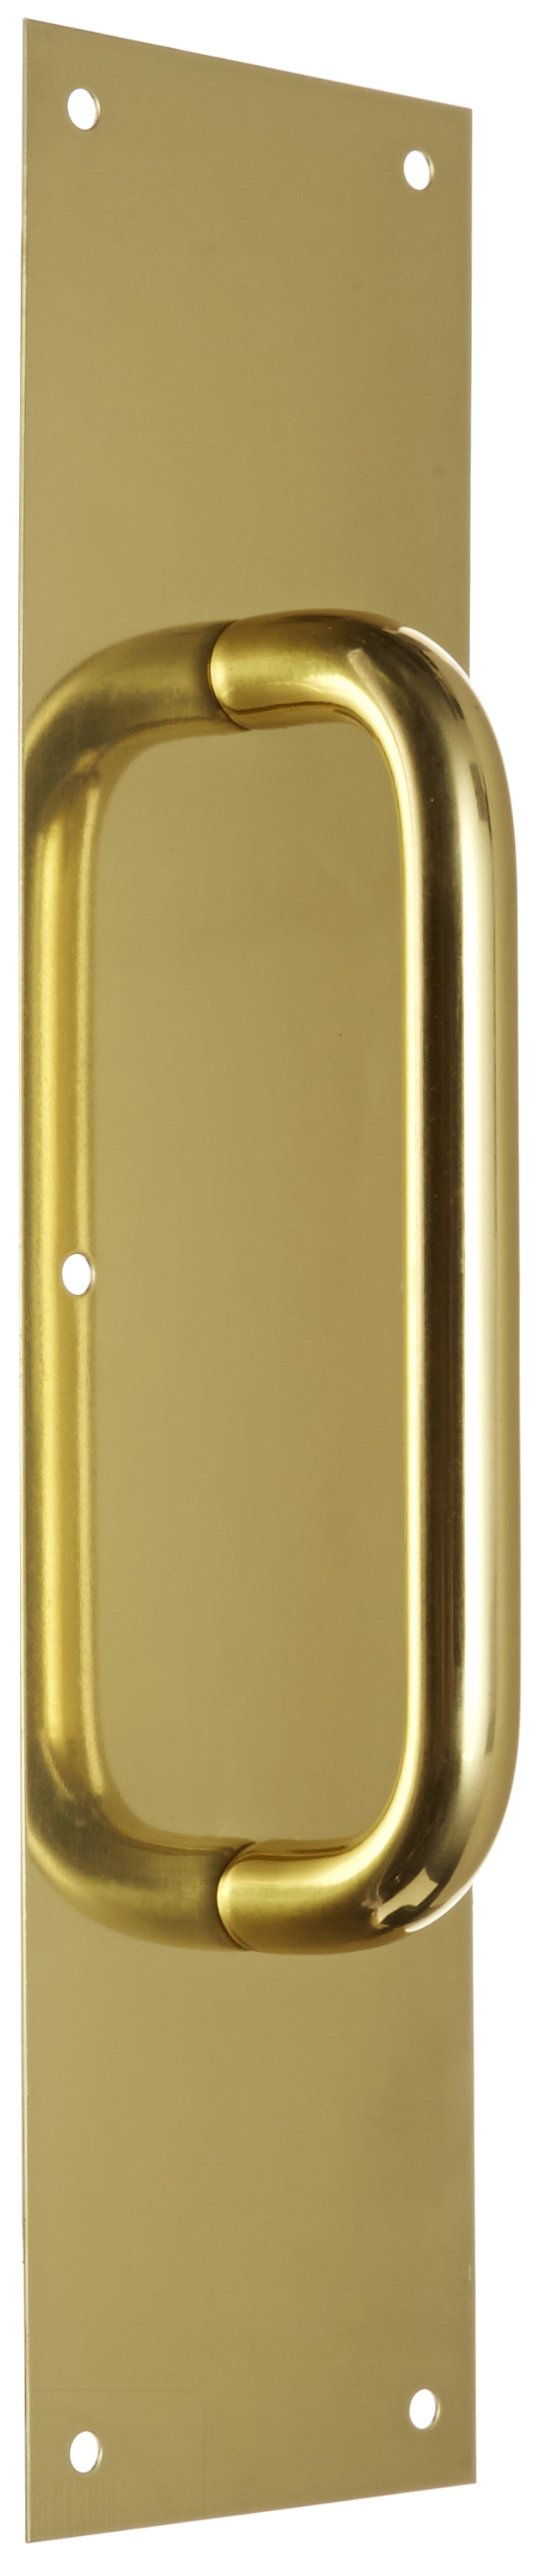 Rockwood 107 X 70C.3 Brass Pull Plate, 16'' Height x 4'' Width x 0.050'' Thick, 8'' Center-to-Center Handle Length, 3/4'' Pull Diameter, Polished Clear Coated Finish